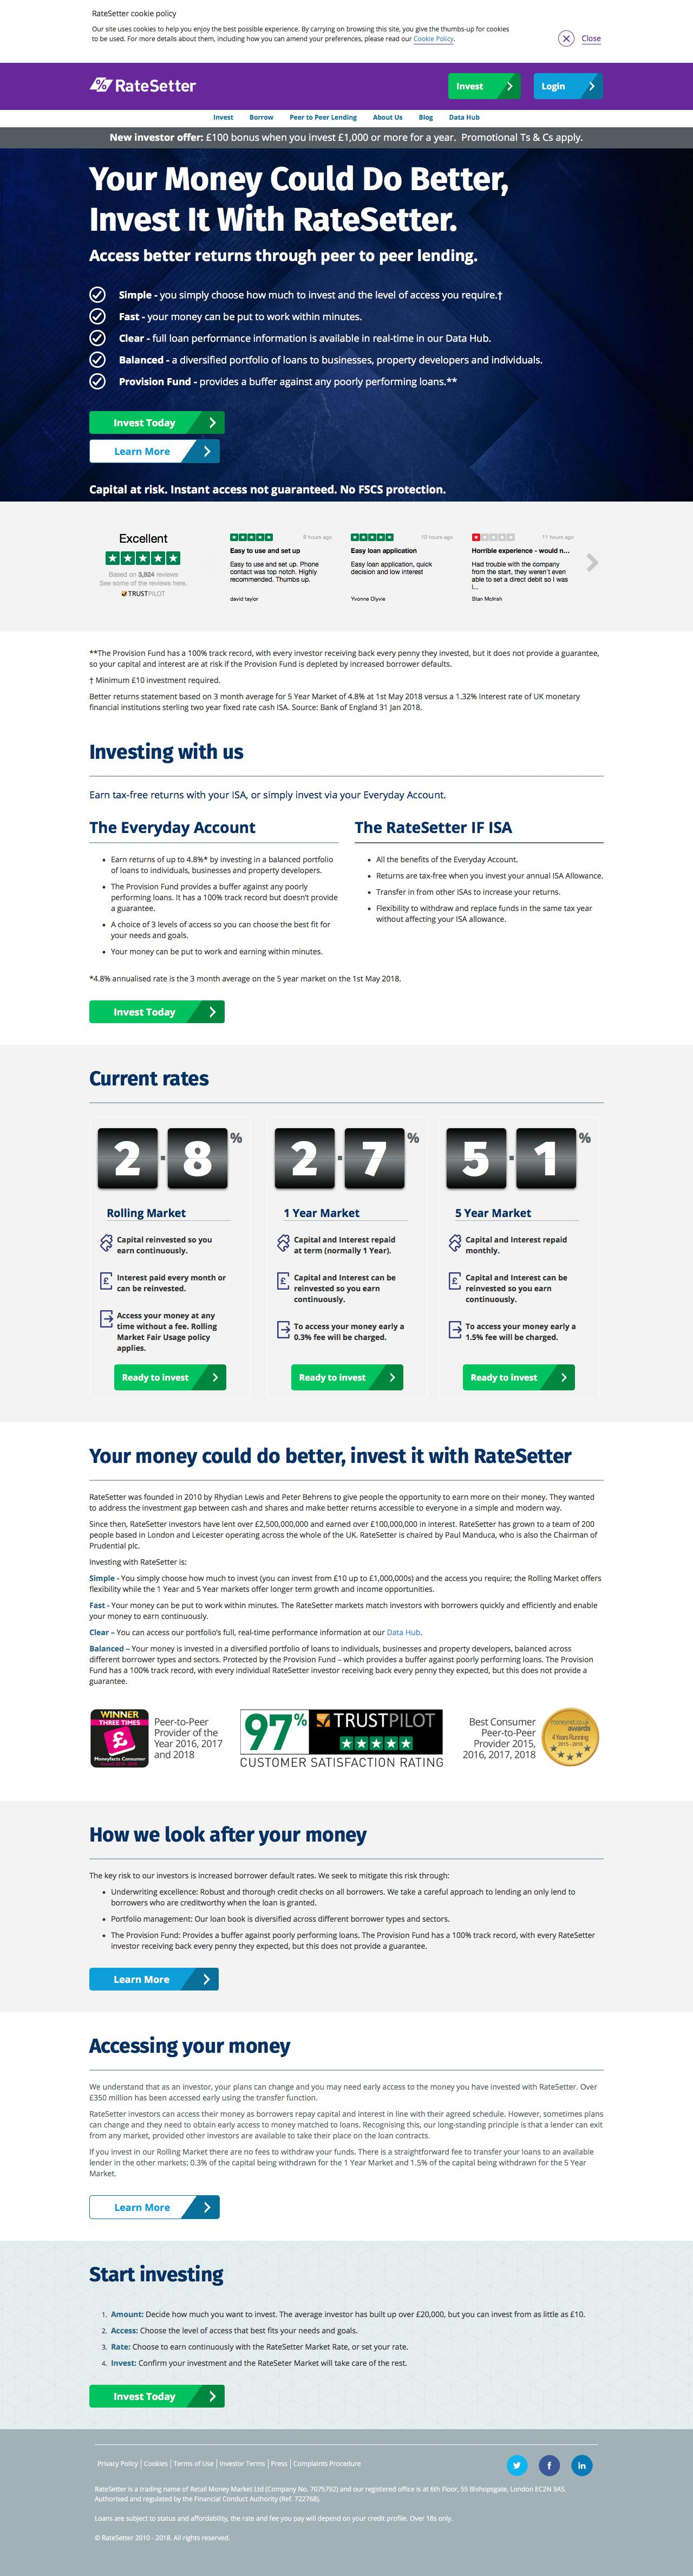 Screenshot of ratesetter.com - RateSetter Peer To Peer Lender | P2P Investing and Borrowing - captured May 22, 2018